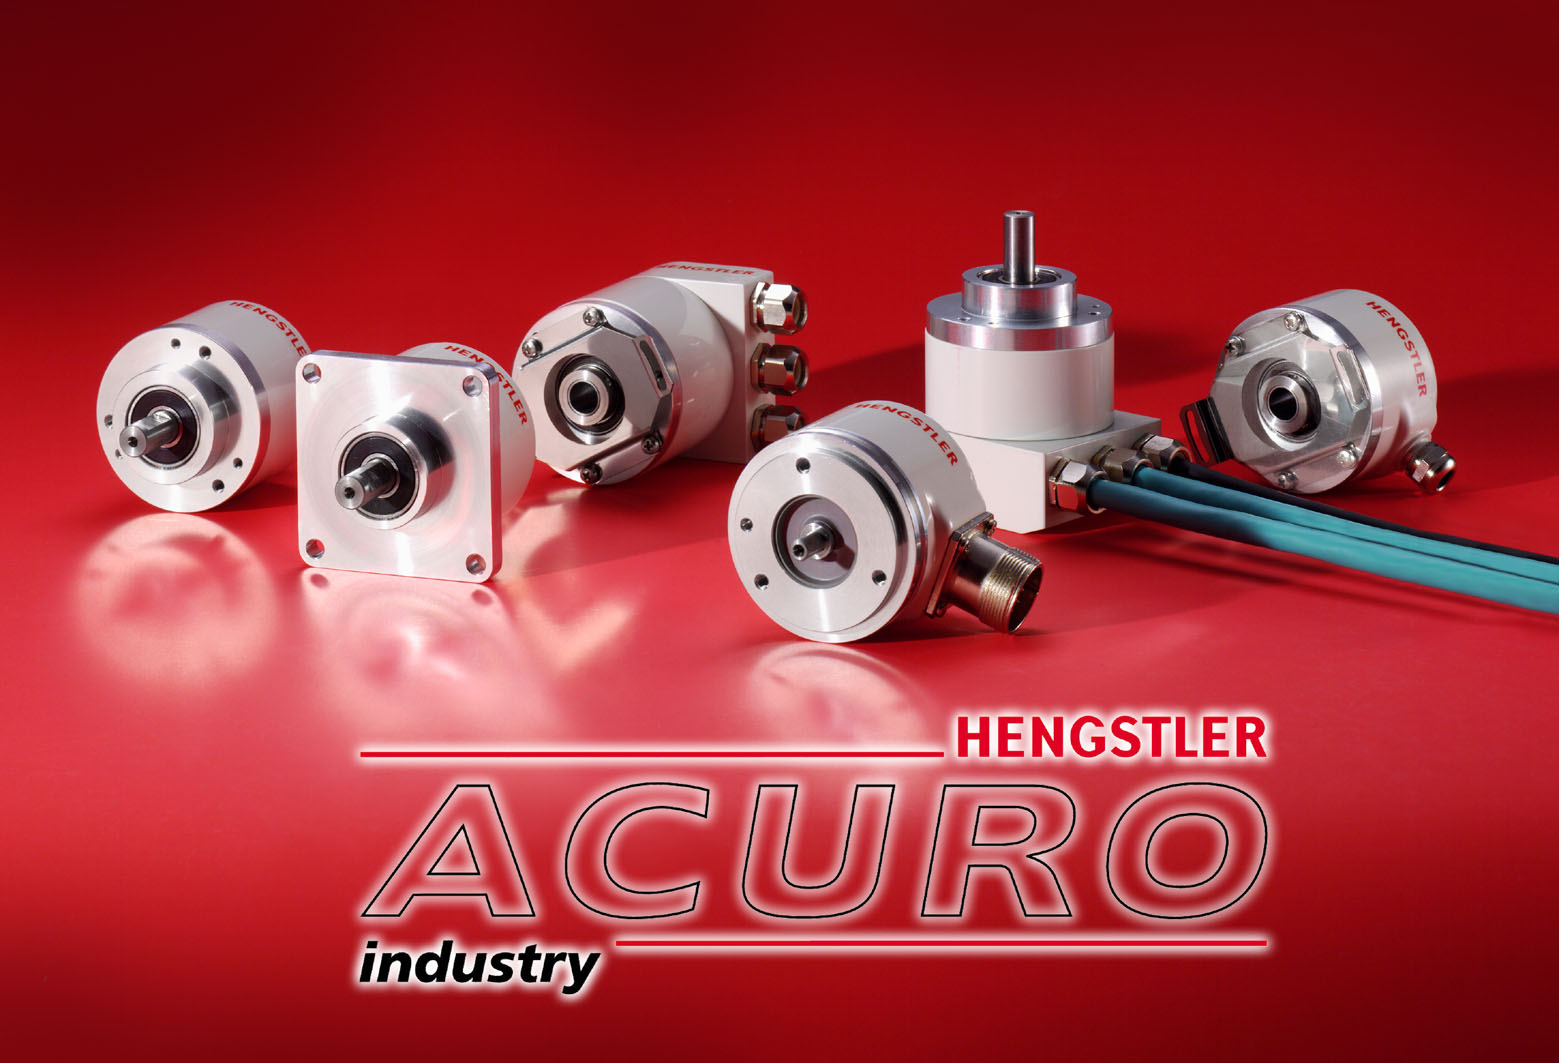 ACURO Absolute encoders